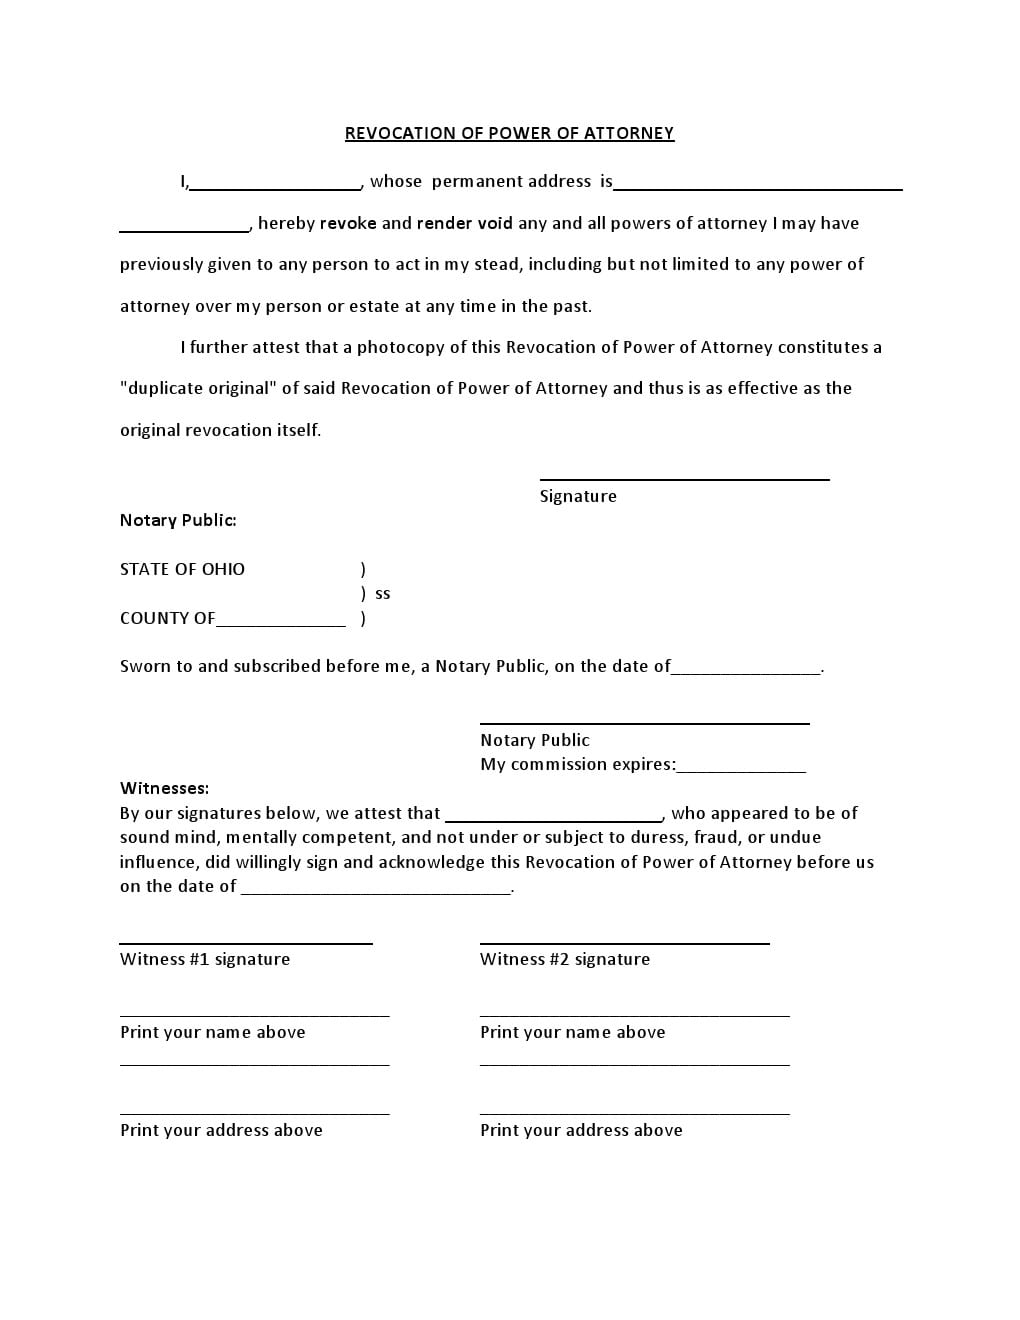 Free Ohio Power of Attorney Forms